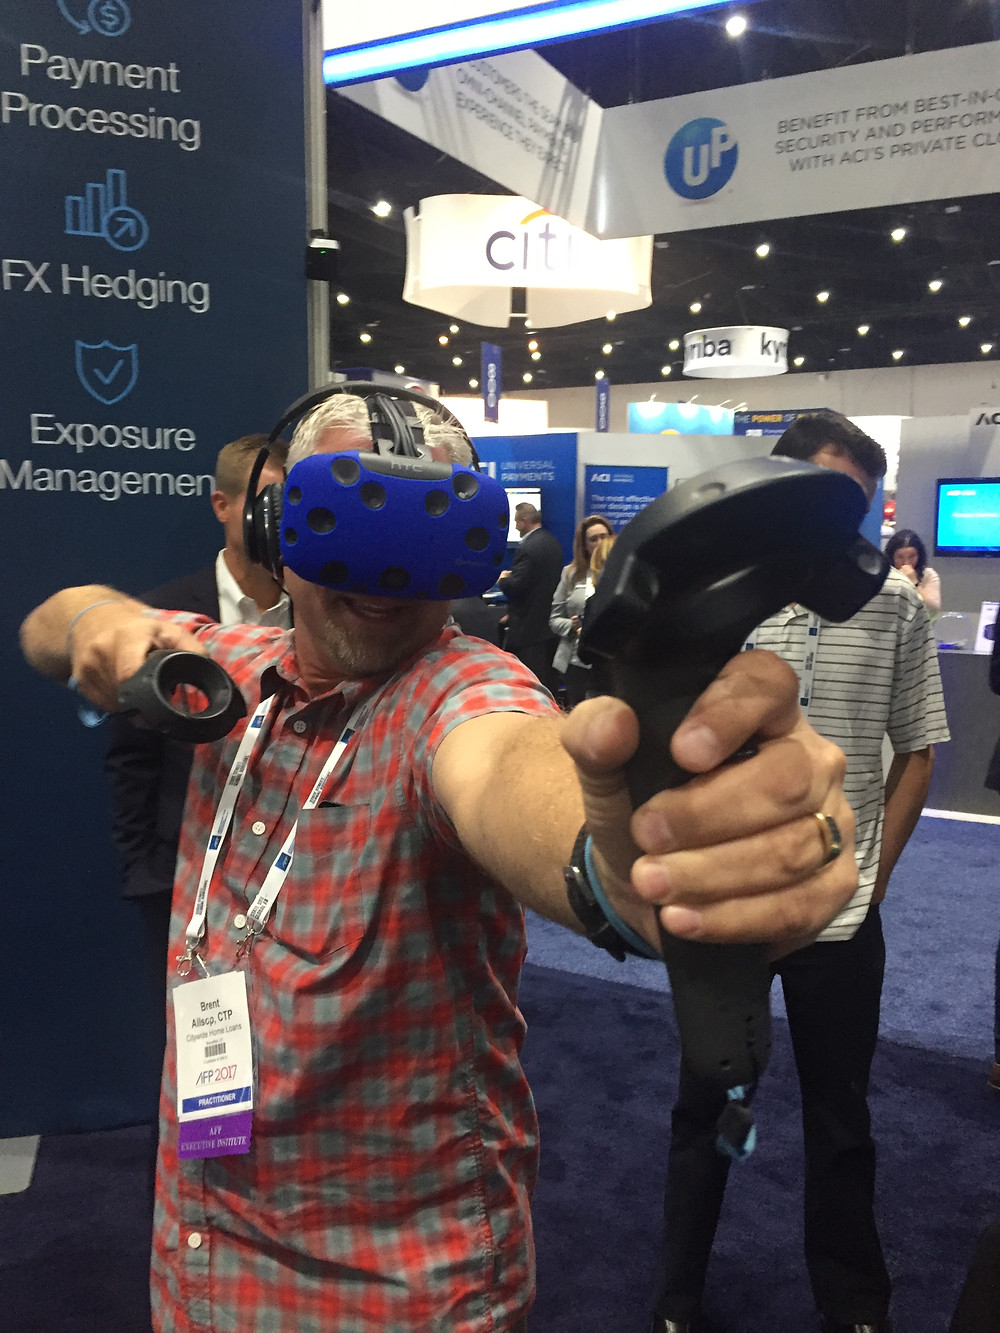 Image of VR at a Trade Show